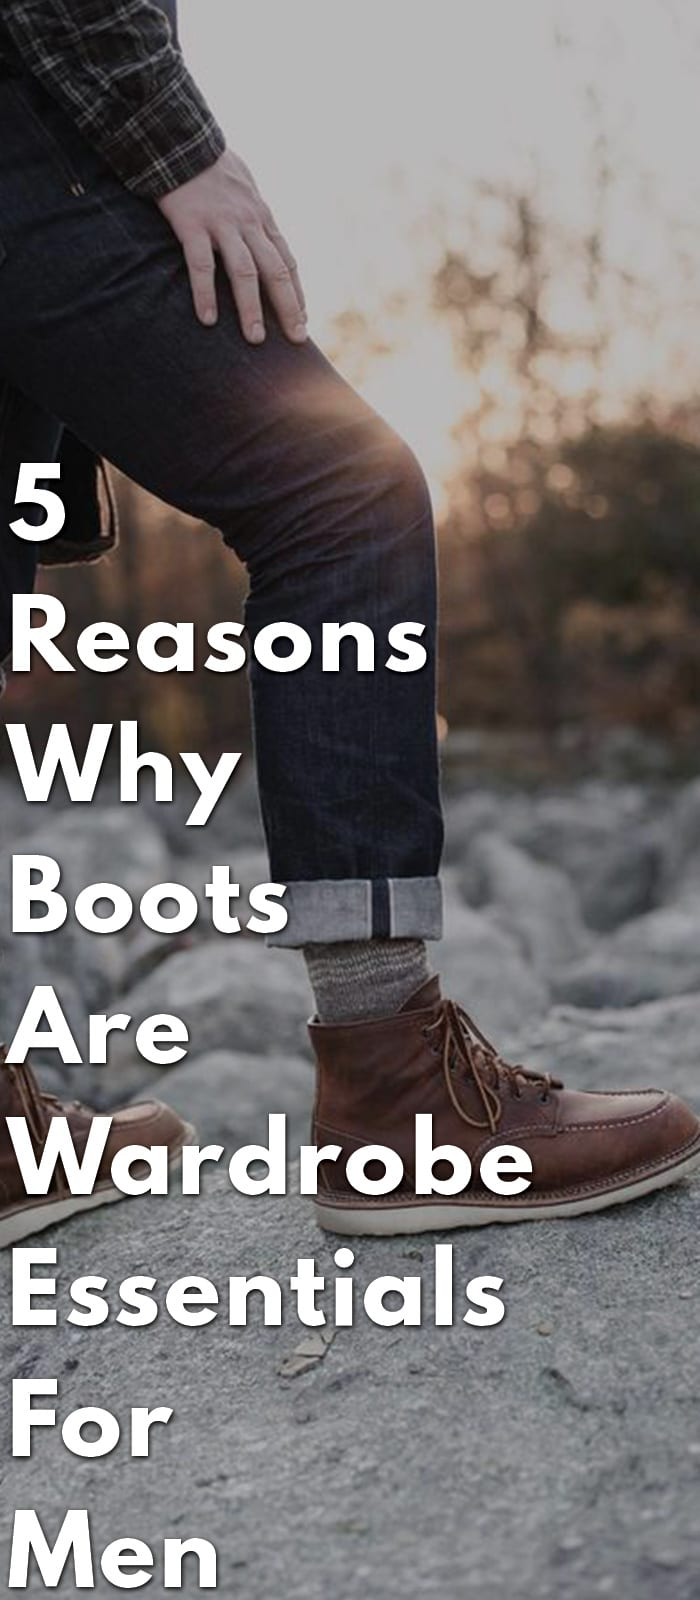 5-Reasons-Why-Boots-Are-Wardrobe-Essentials-For-Men